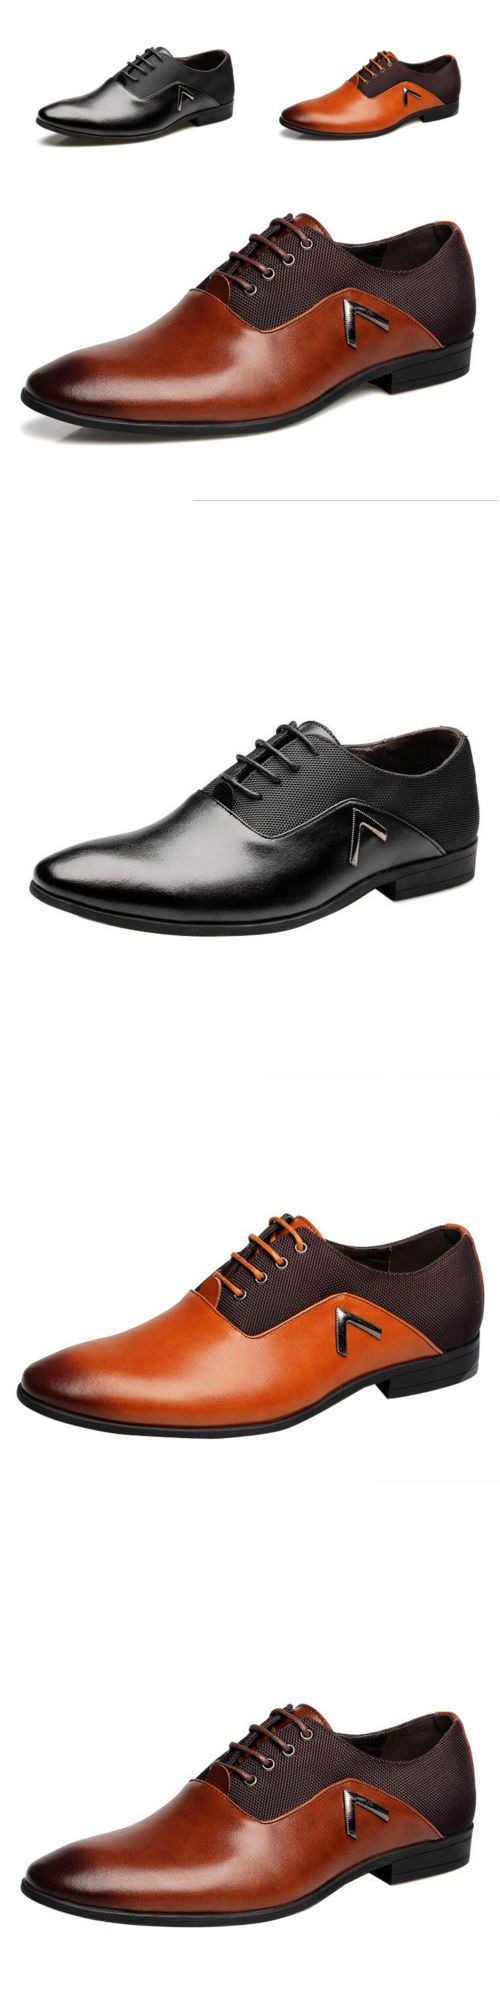 Dress Formal 53120: Men Business Dress Formal Leather Shoes Flat Oxfords Loafers Lace Up Pointy Toe -> BUY IT NOW ONLY: $30.25 on eBay!